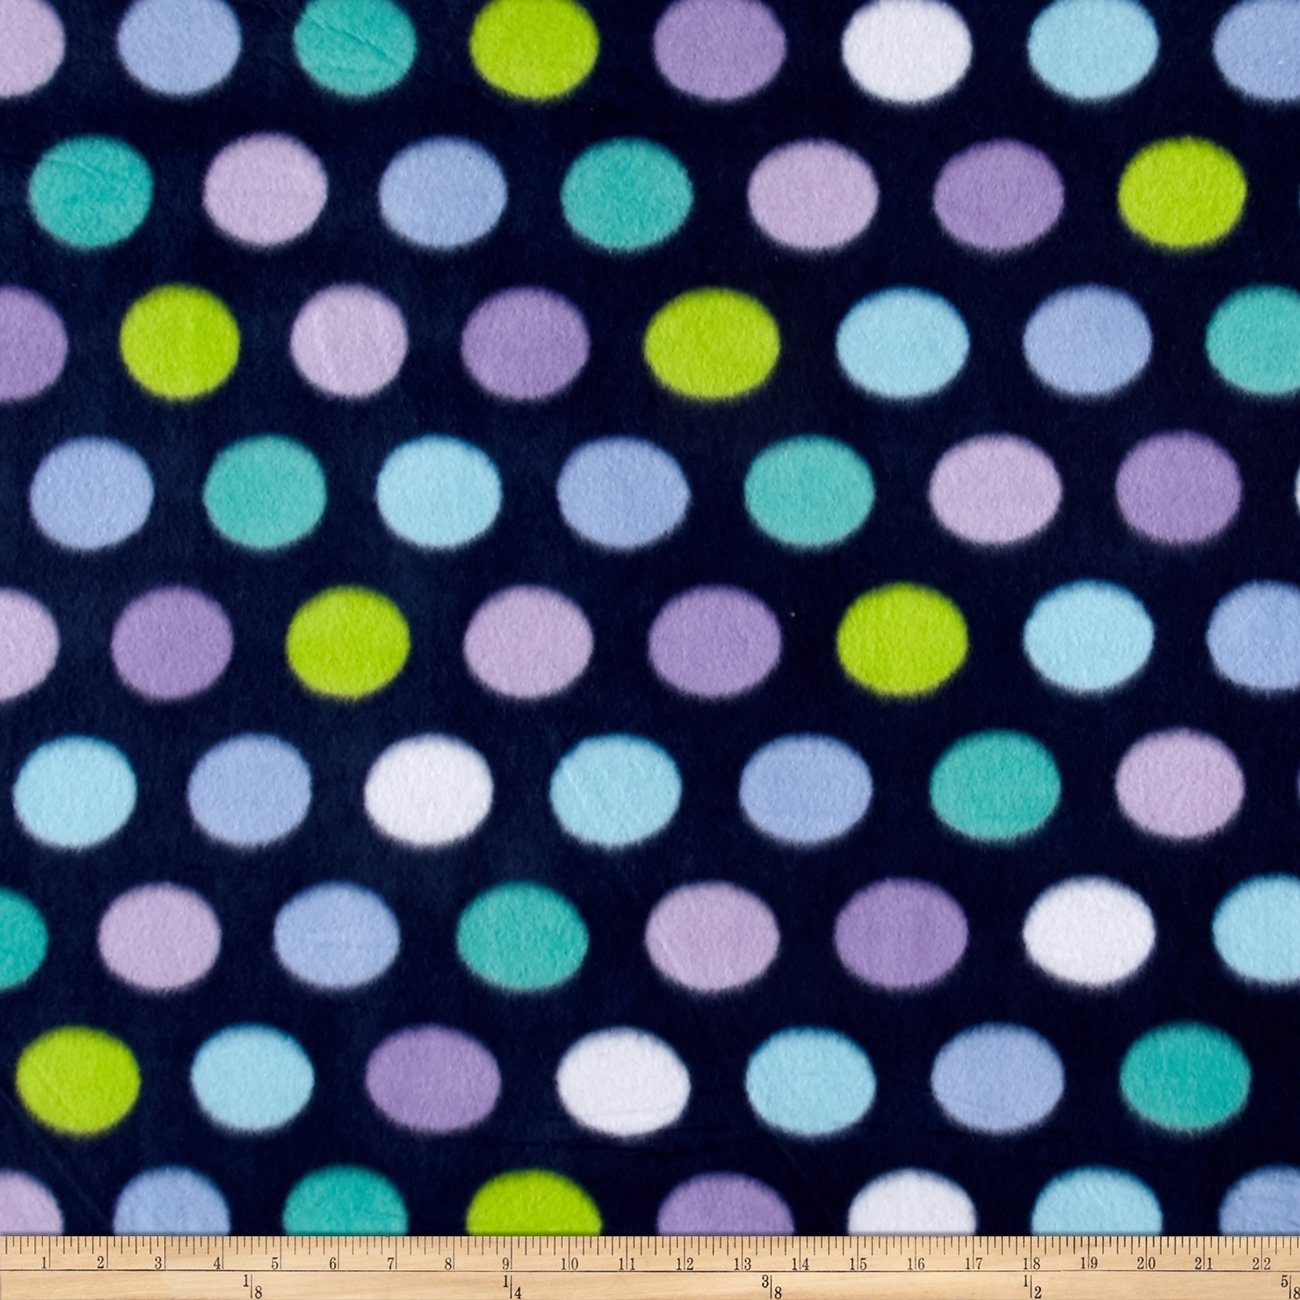 Newcastle Fabrics Polar Fleece Print Fun Dot Navy Fabric by The Yard, Navy 0441442